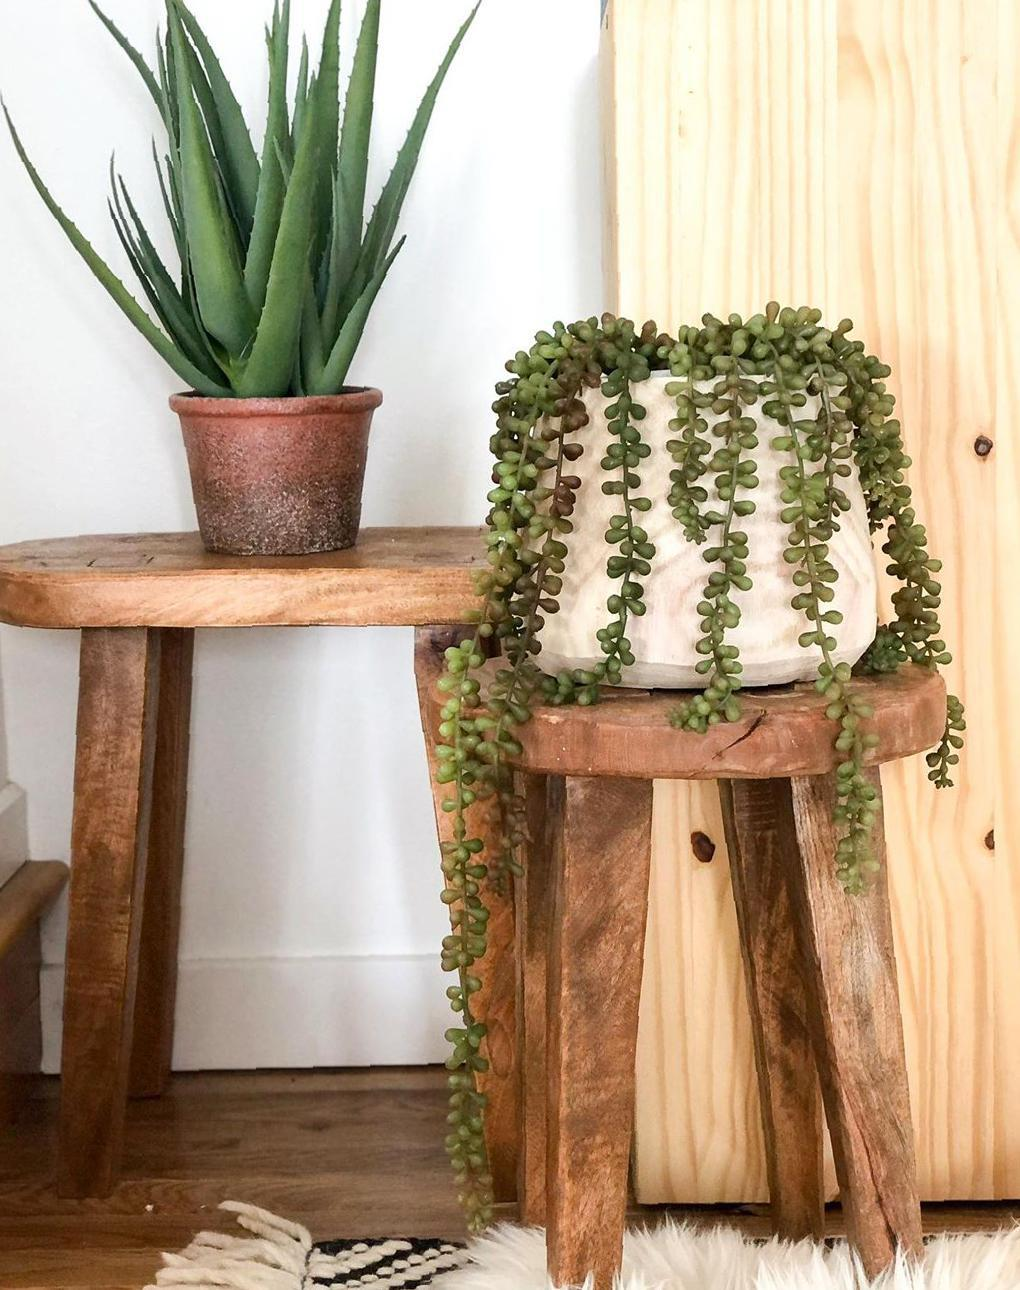 Gorgeous Indoor Plants Idea Images for Decoration - Page 6 of 8 - Guide19 Blog